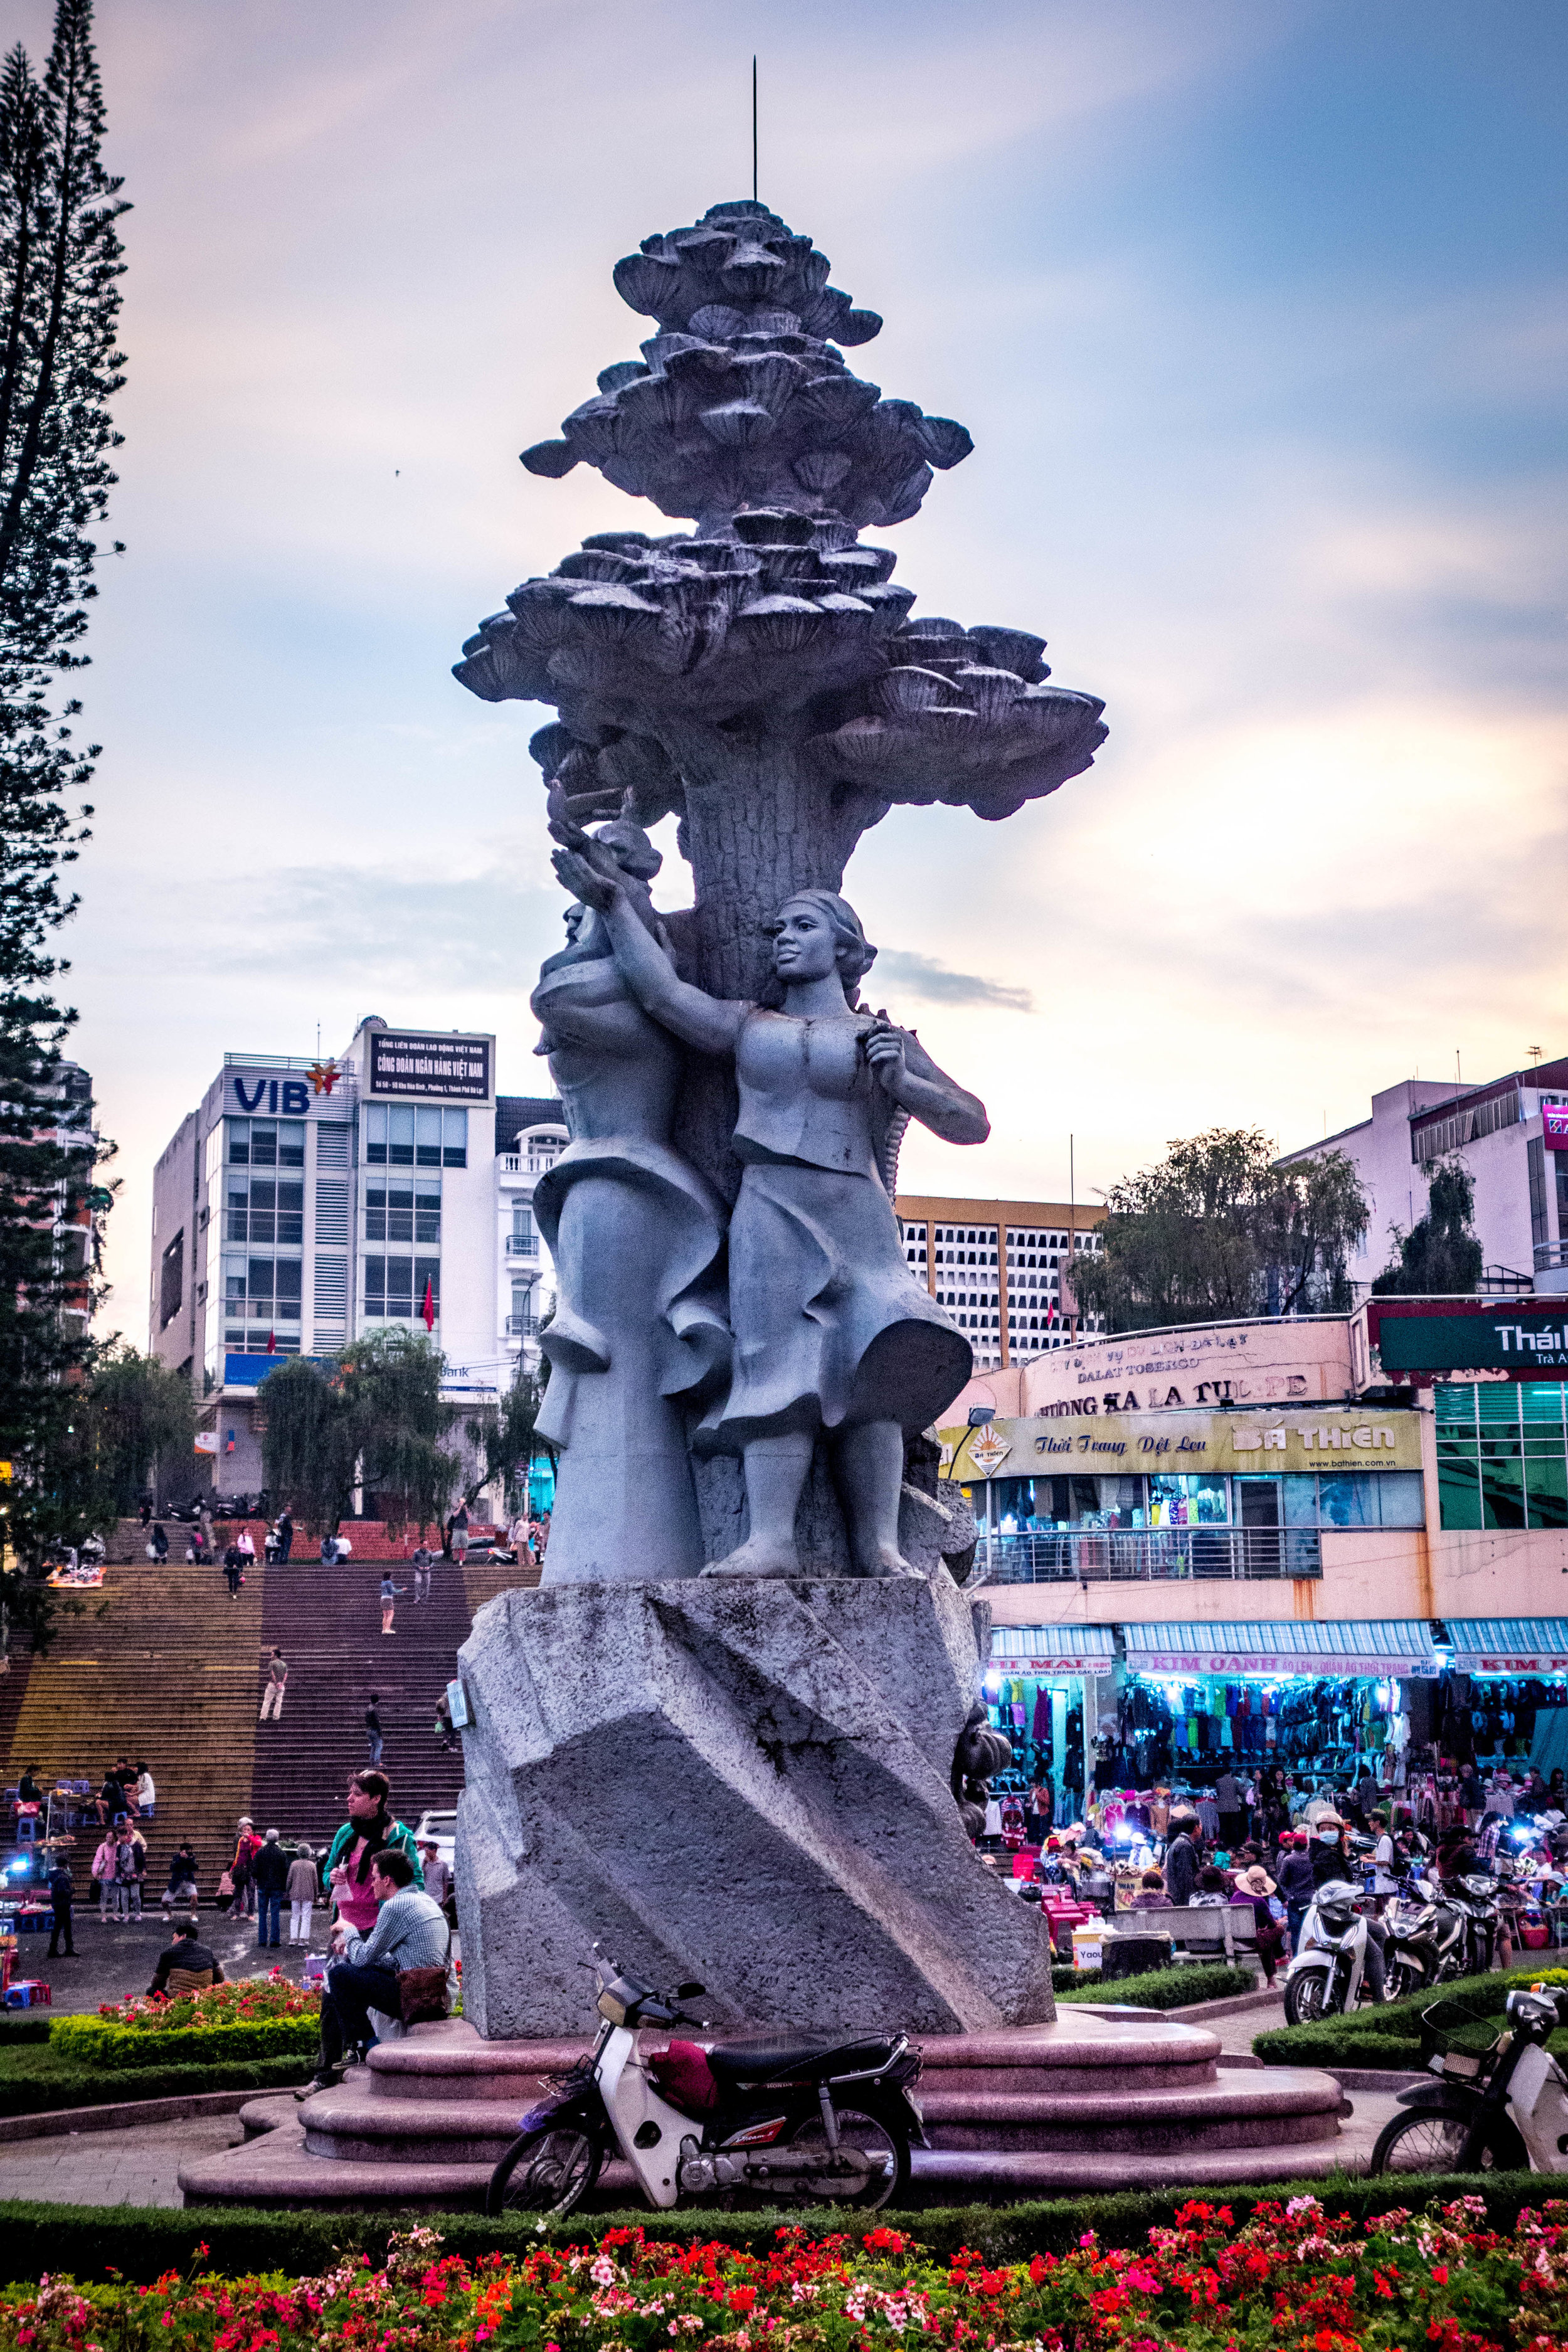 Statue in the middle of downtown Da Lat